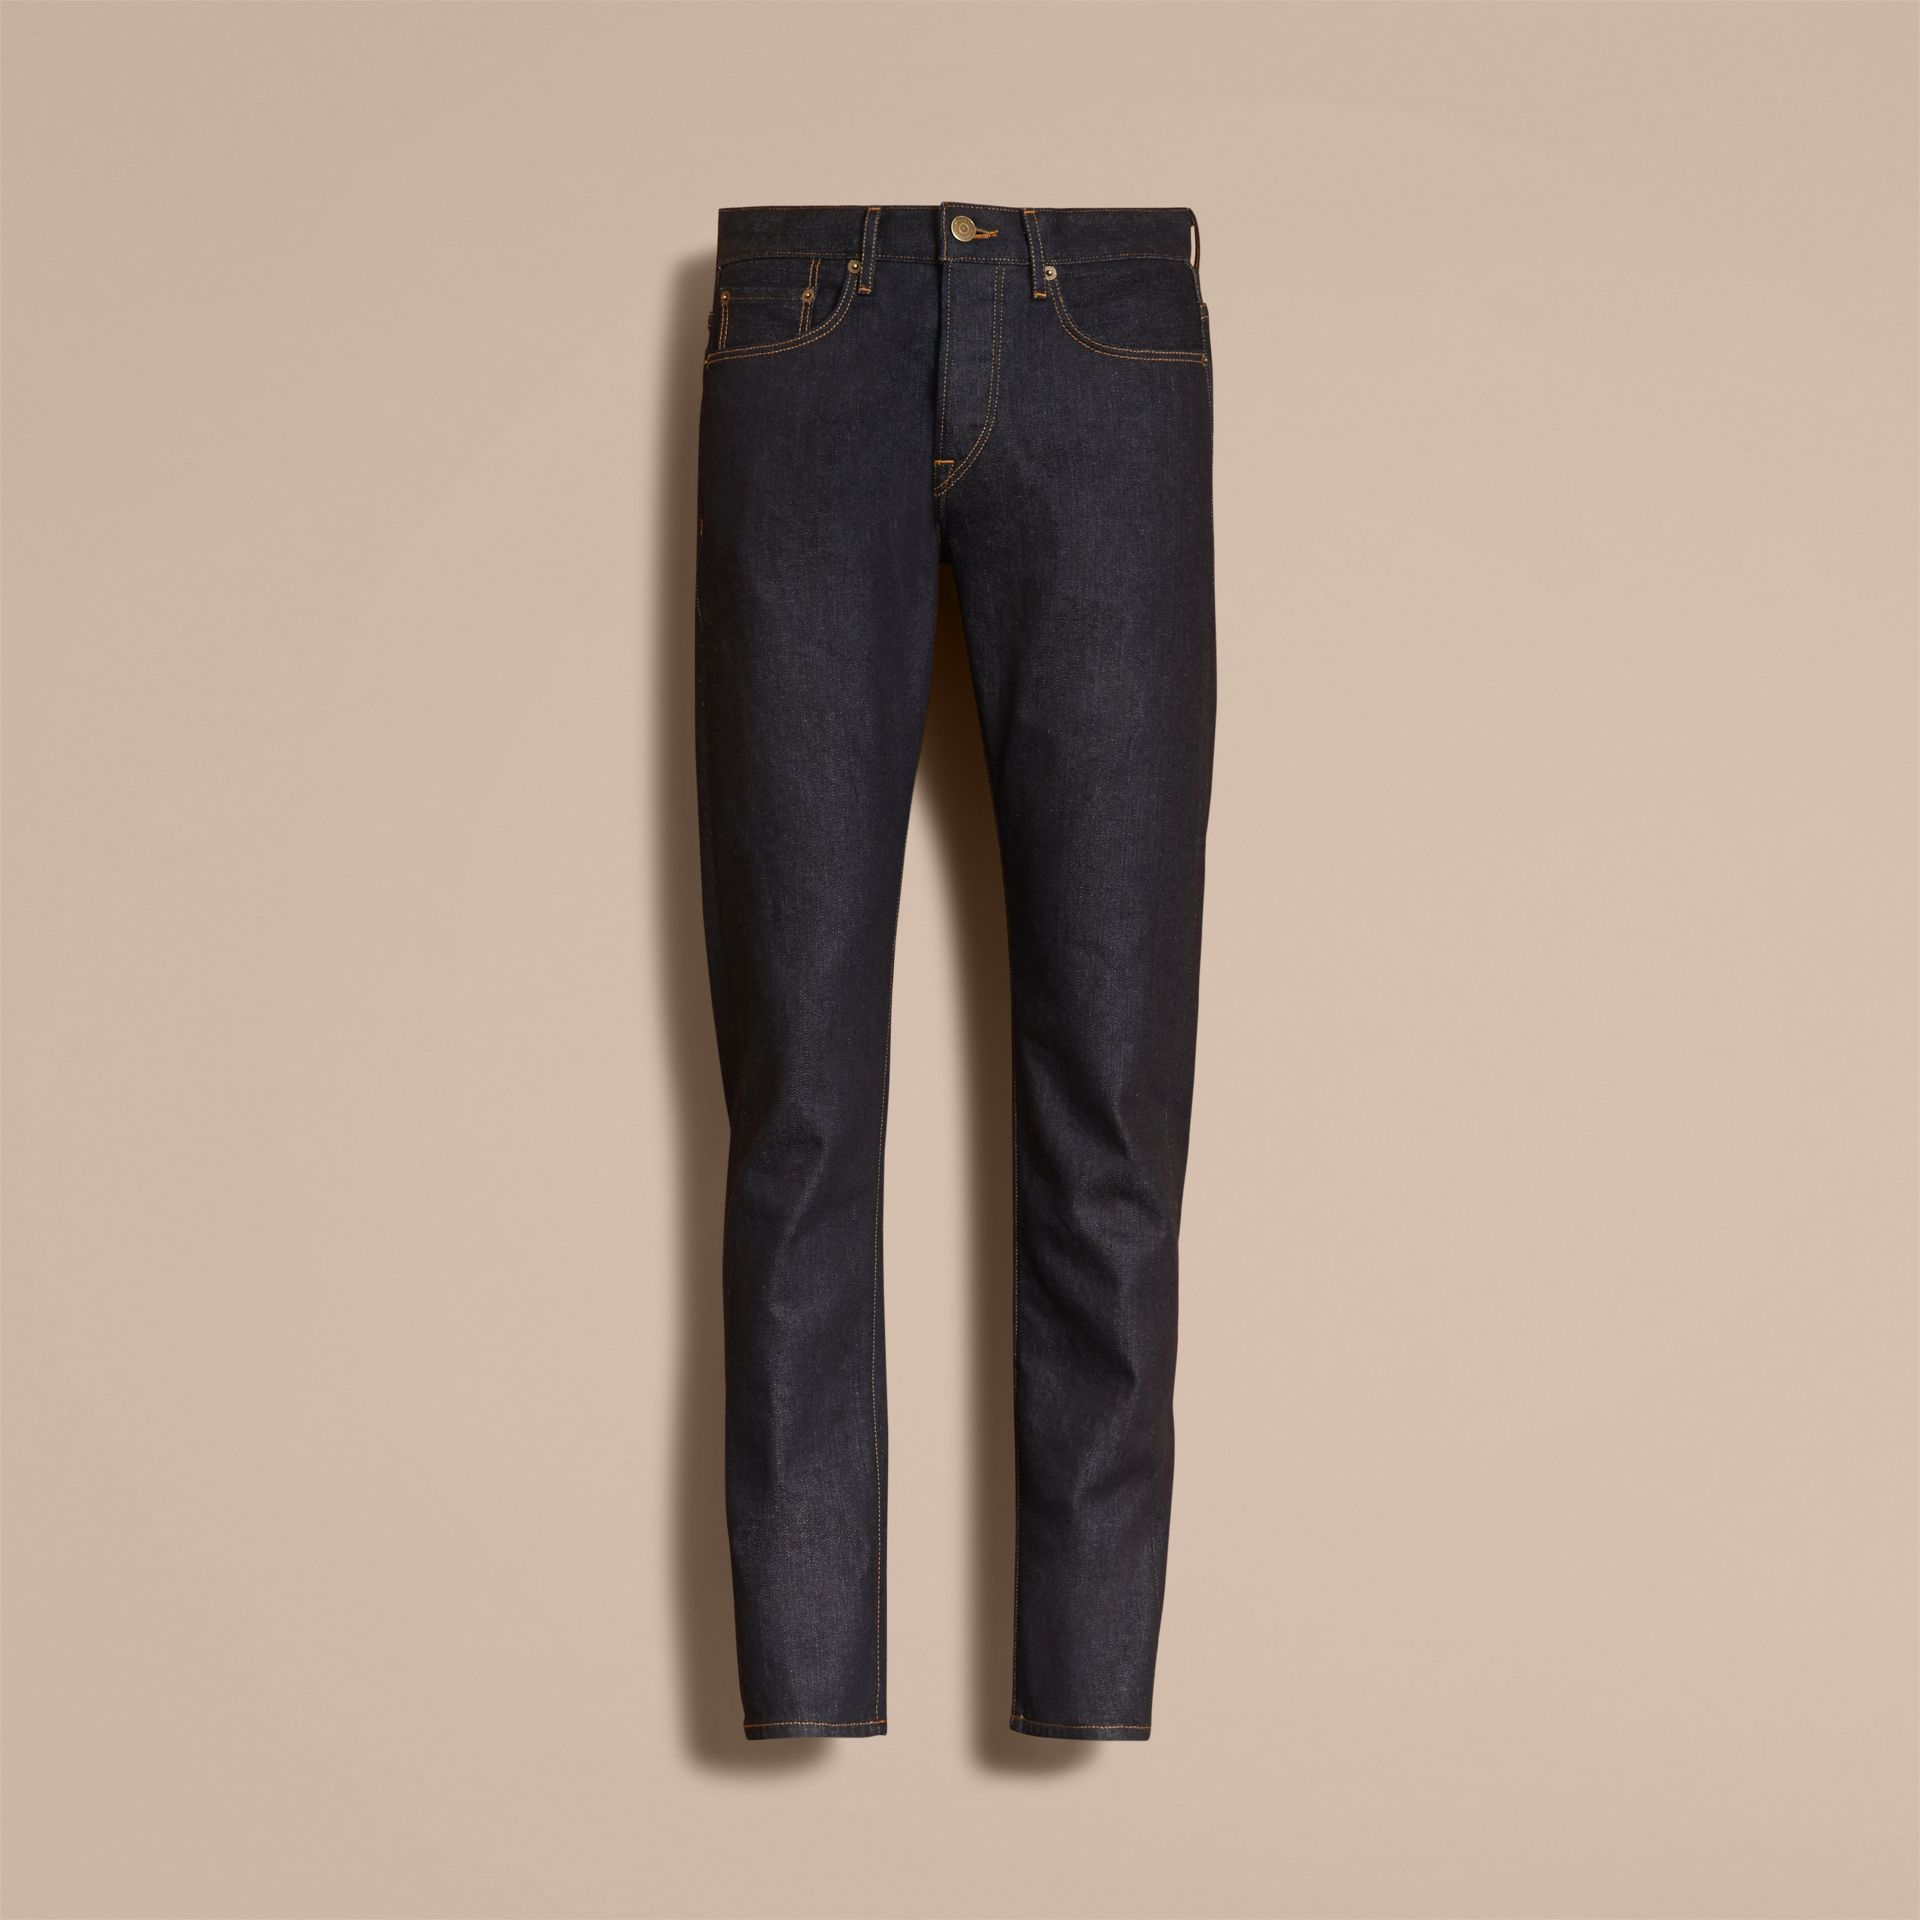 Relaxed Fit Comfort Stretch Indigo Japanese Denim Jeans in Dark - Men | Burberry - gallery image 3